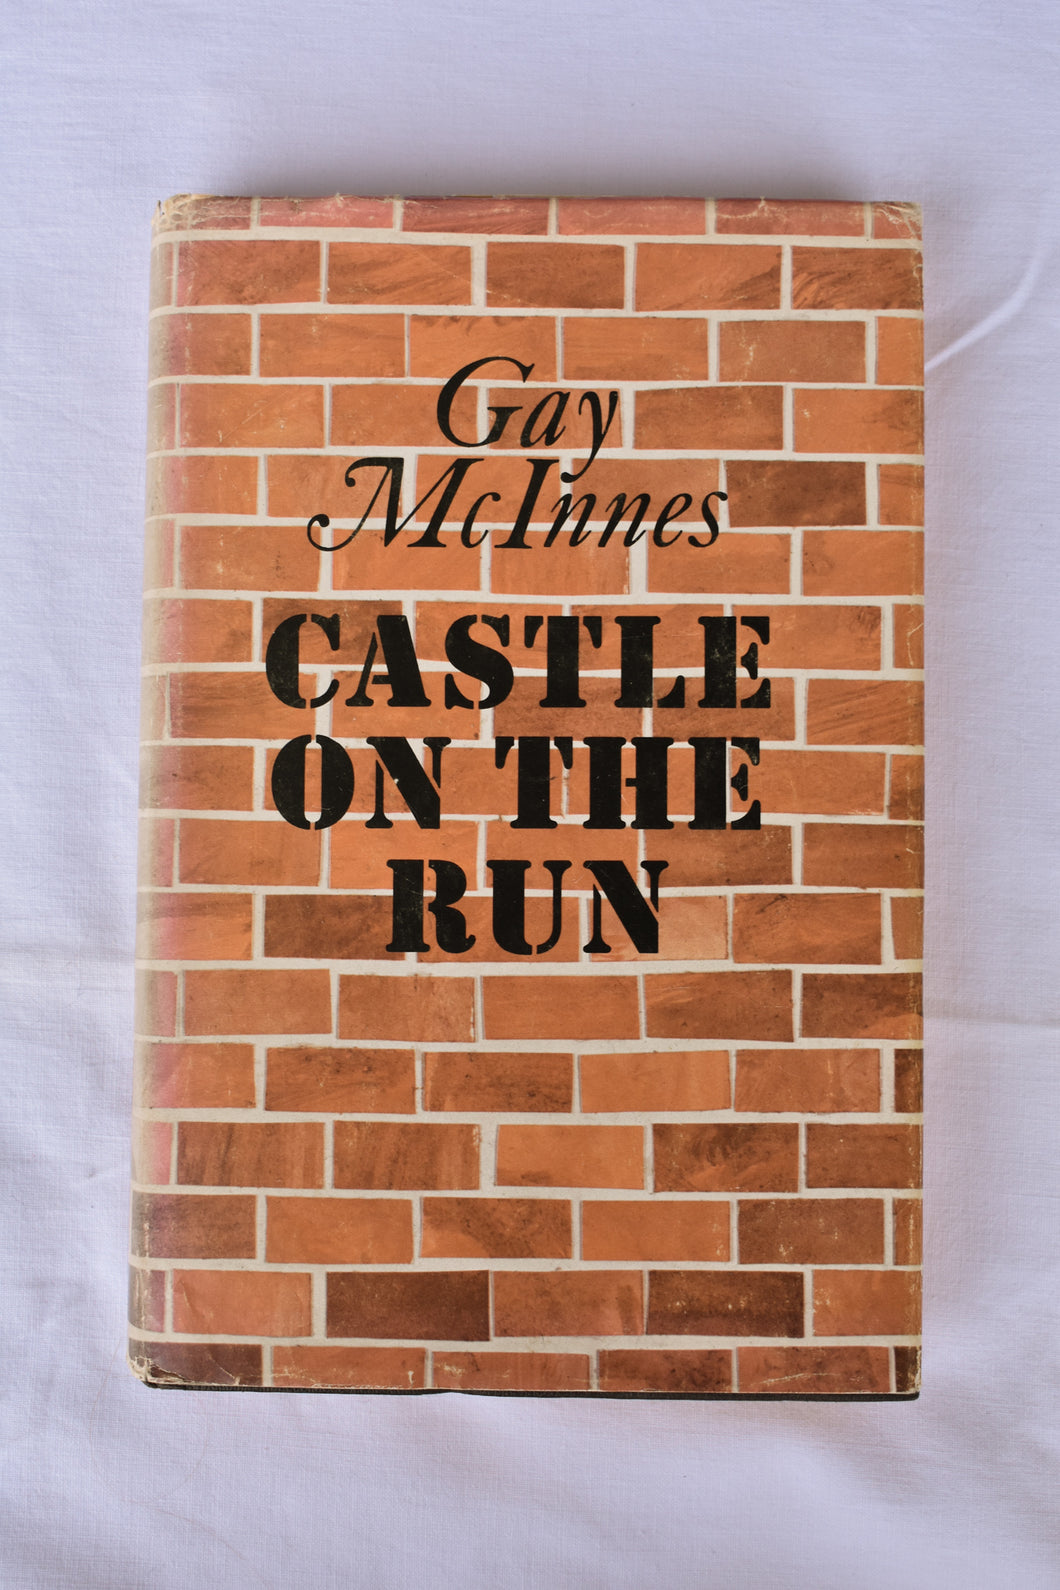 Castle on the Run by Gaye Innes